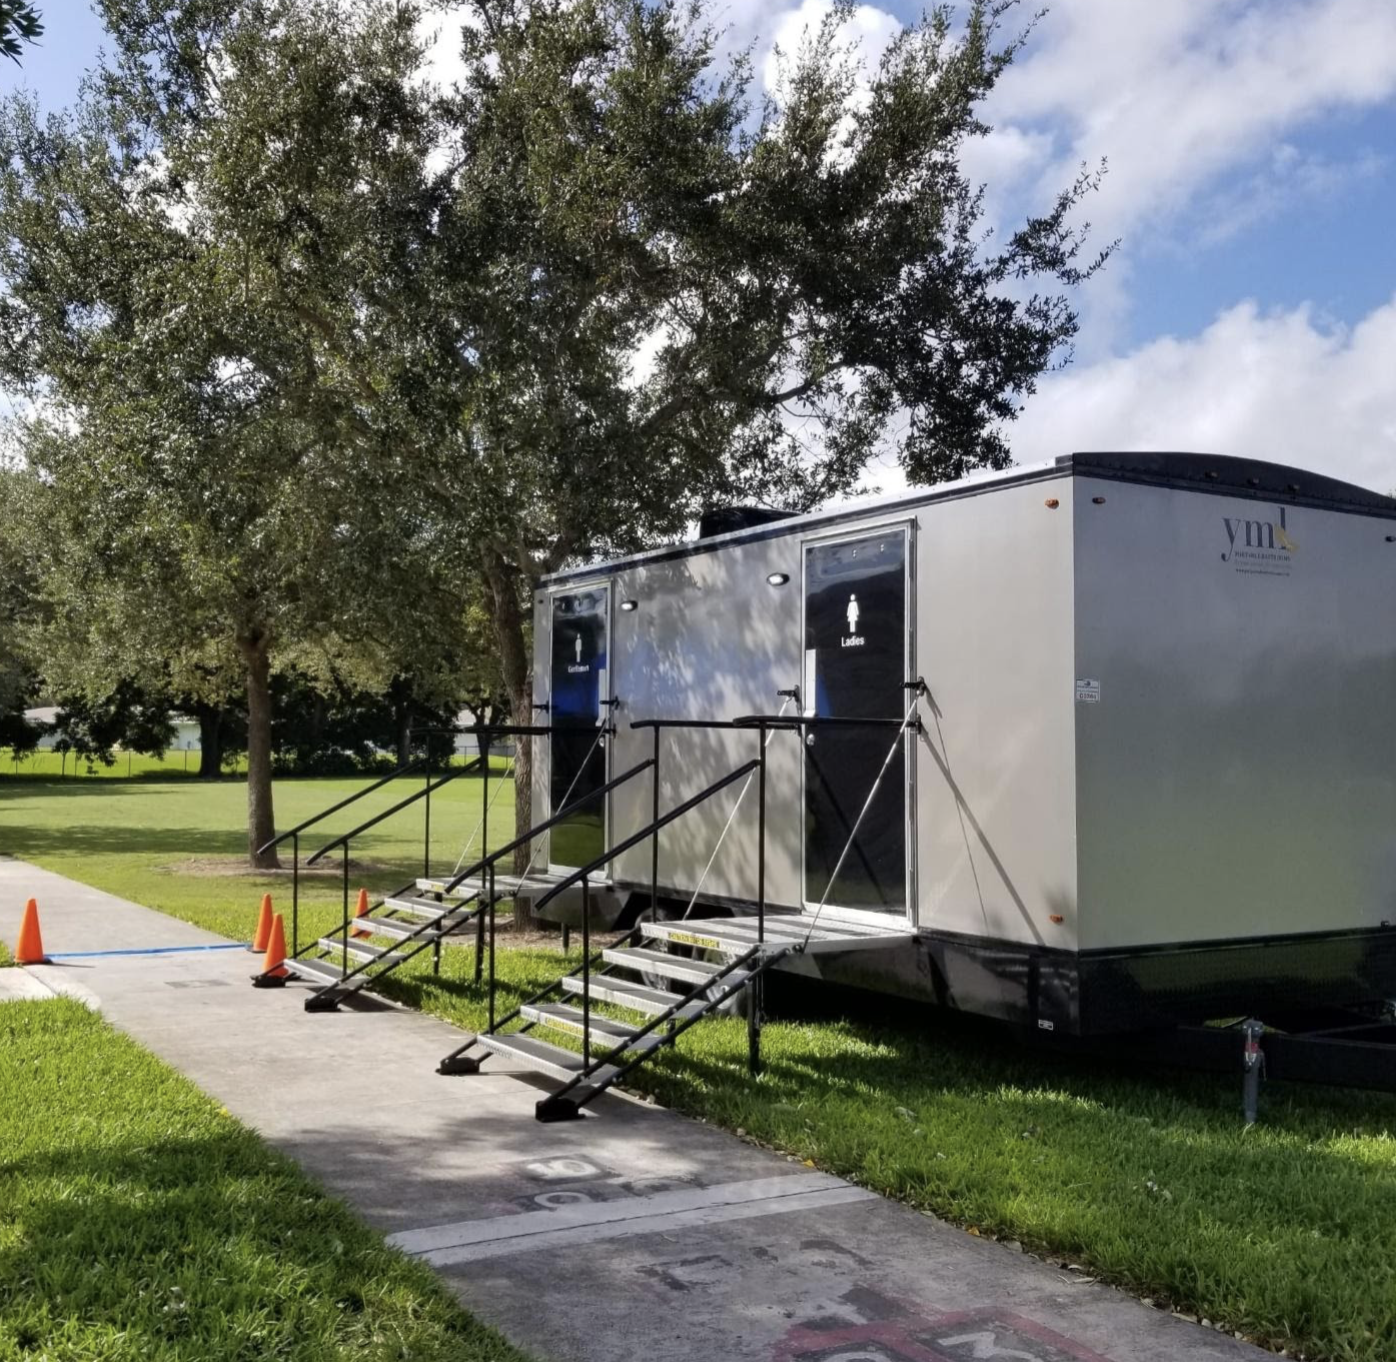 How To Use A Portable Restroom?